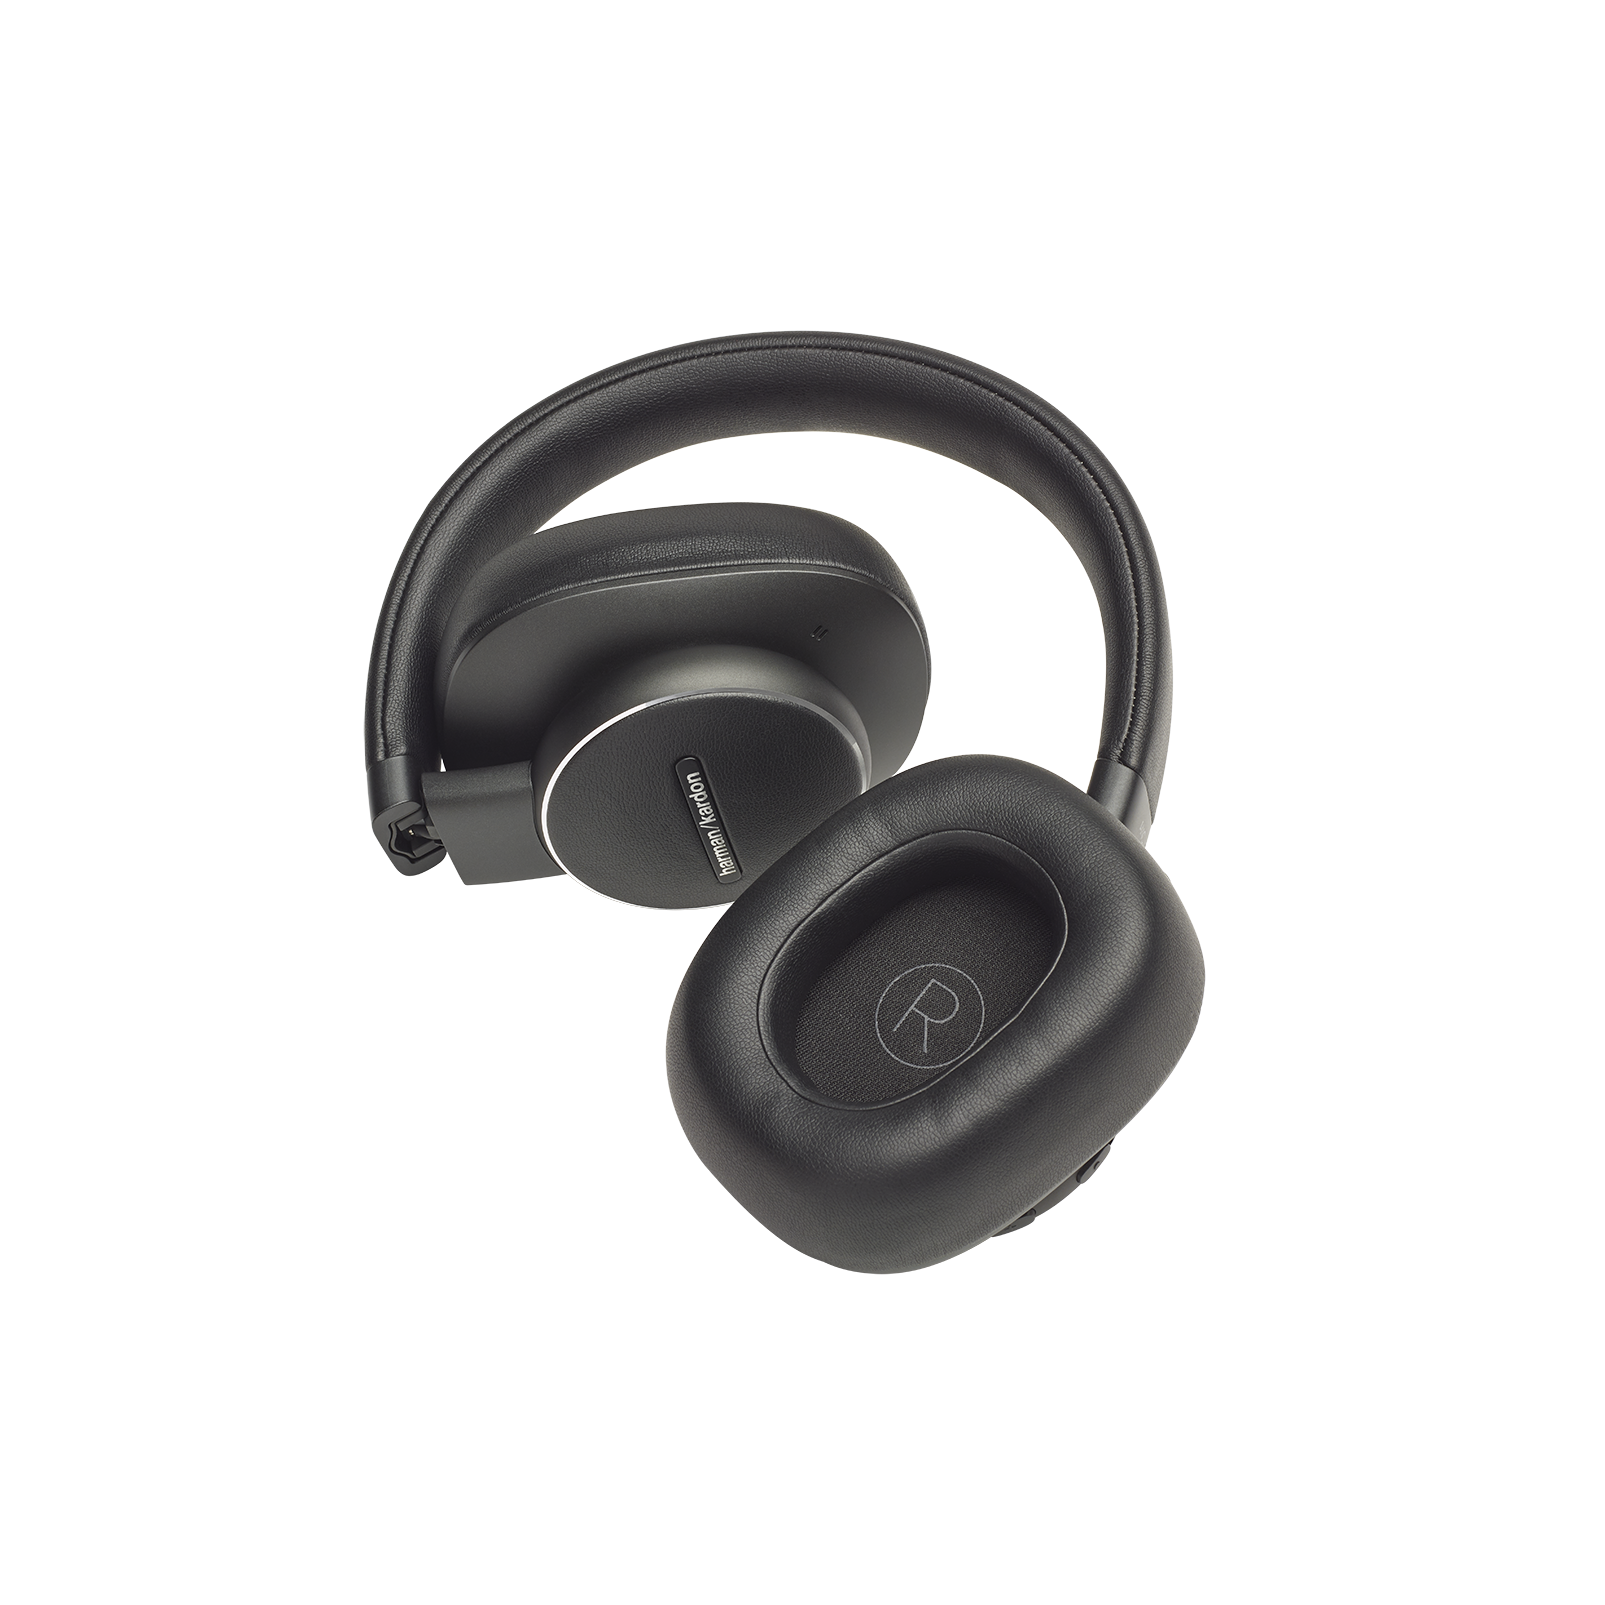 Harman Kardon FLY ANC - Black - Wireless Over-Ear NC Headphones - Detailshot 3